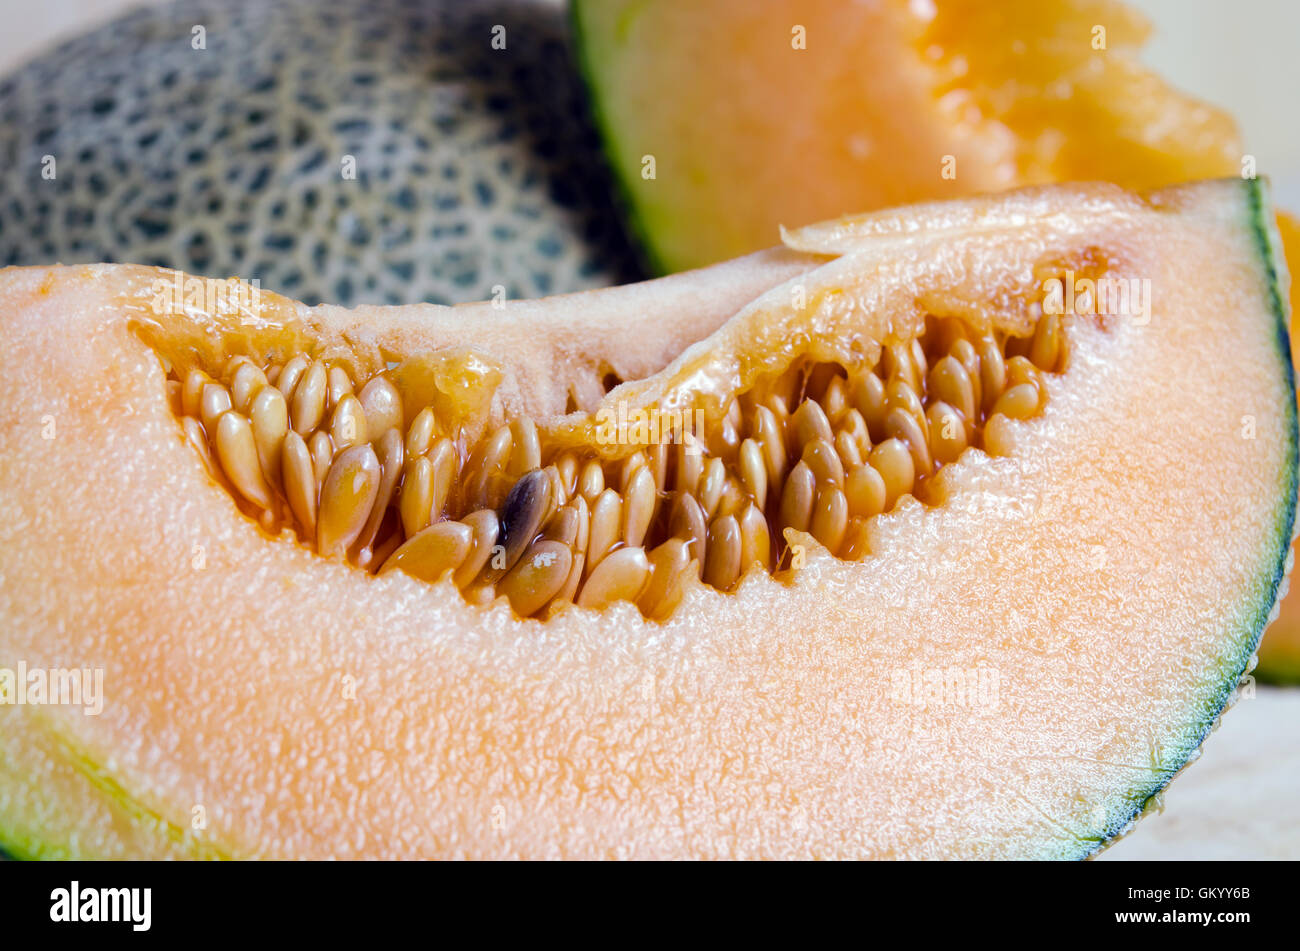 Cucumis melo or melon with half and seeds on wooden plate (Other names are cantelope, cantaloup, honeydew, Crenshaw, - Stock Image